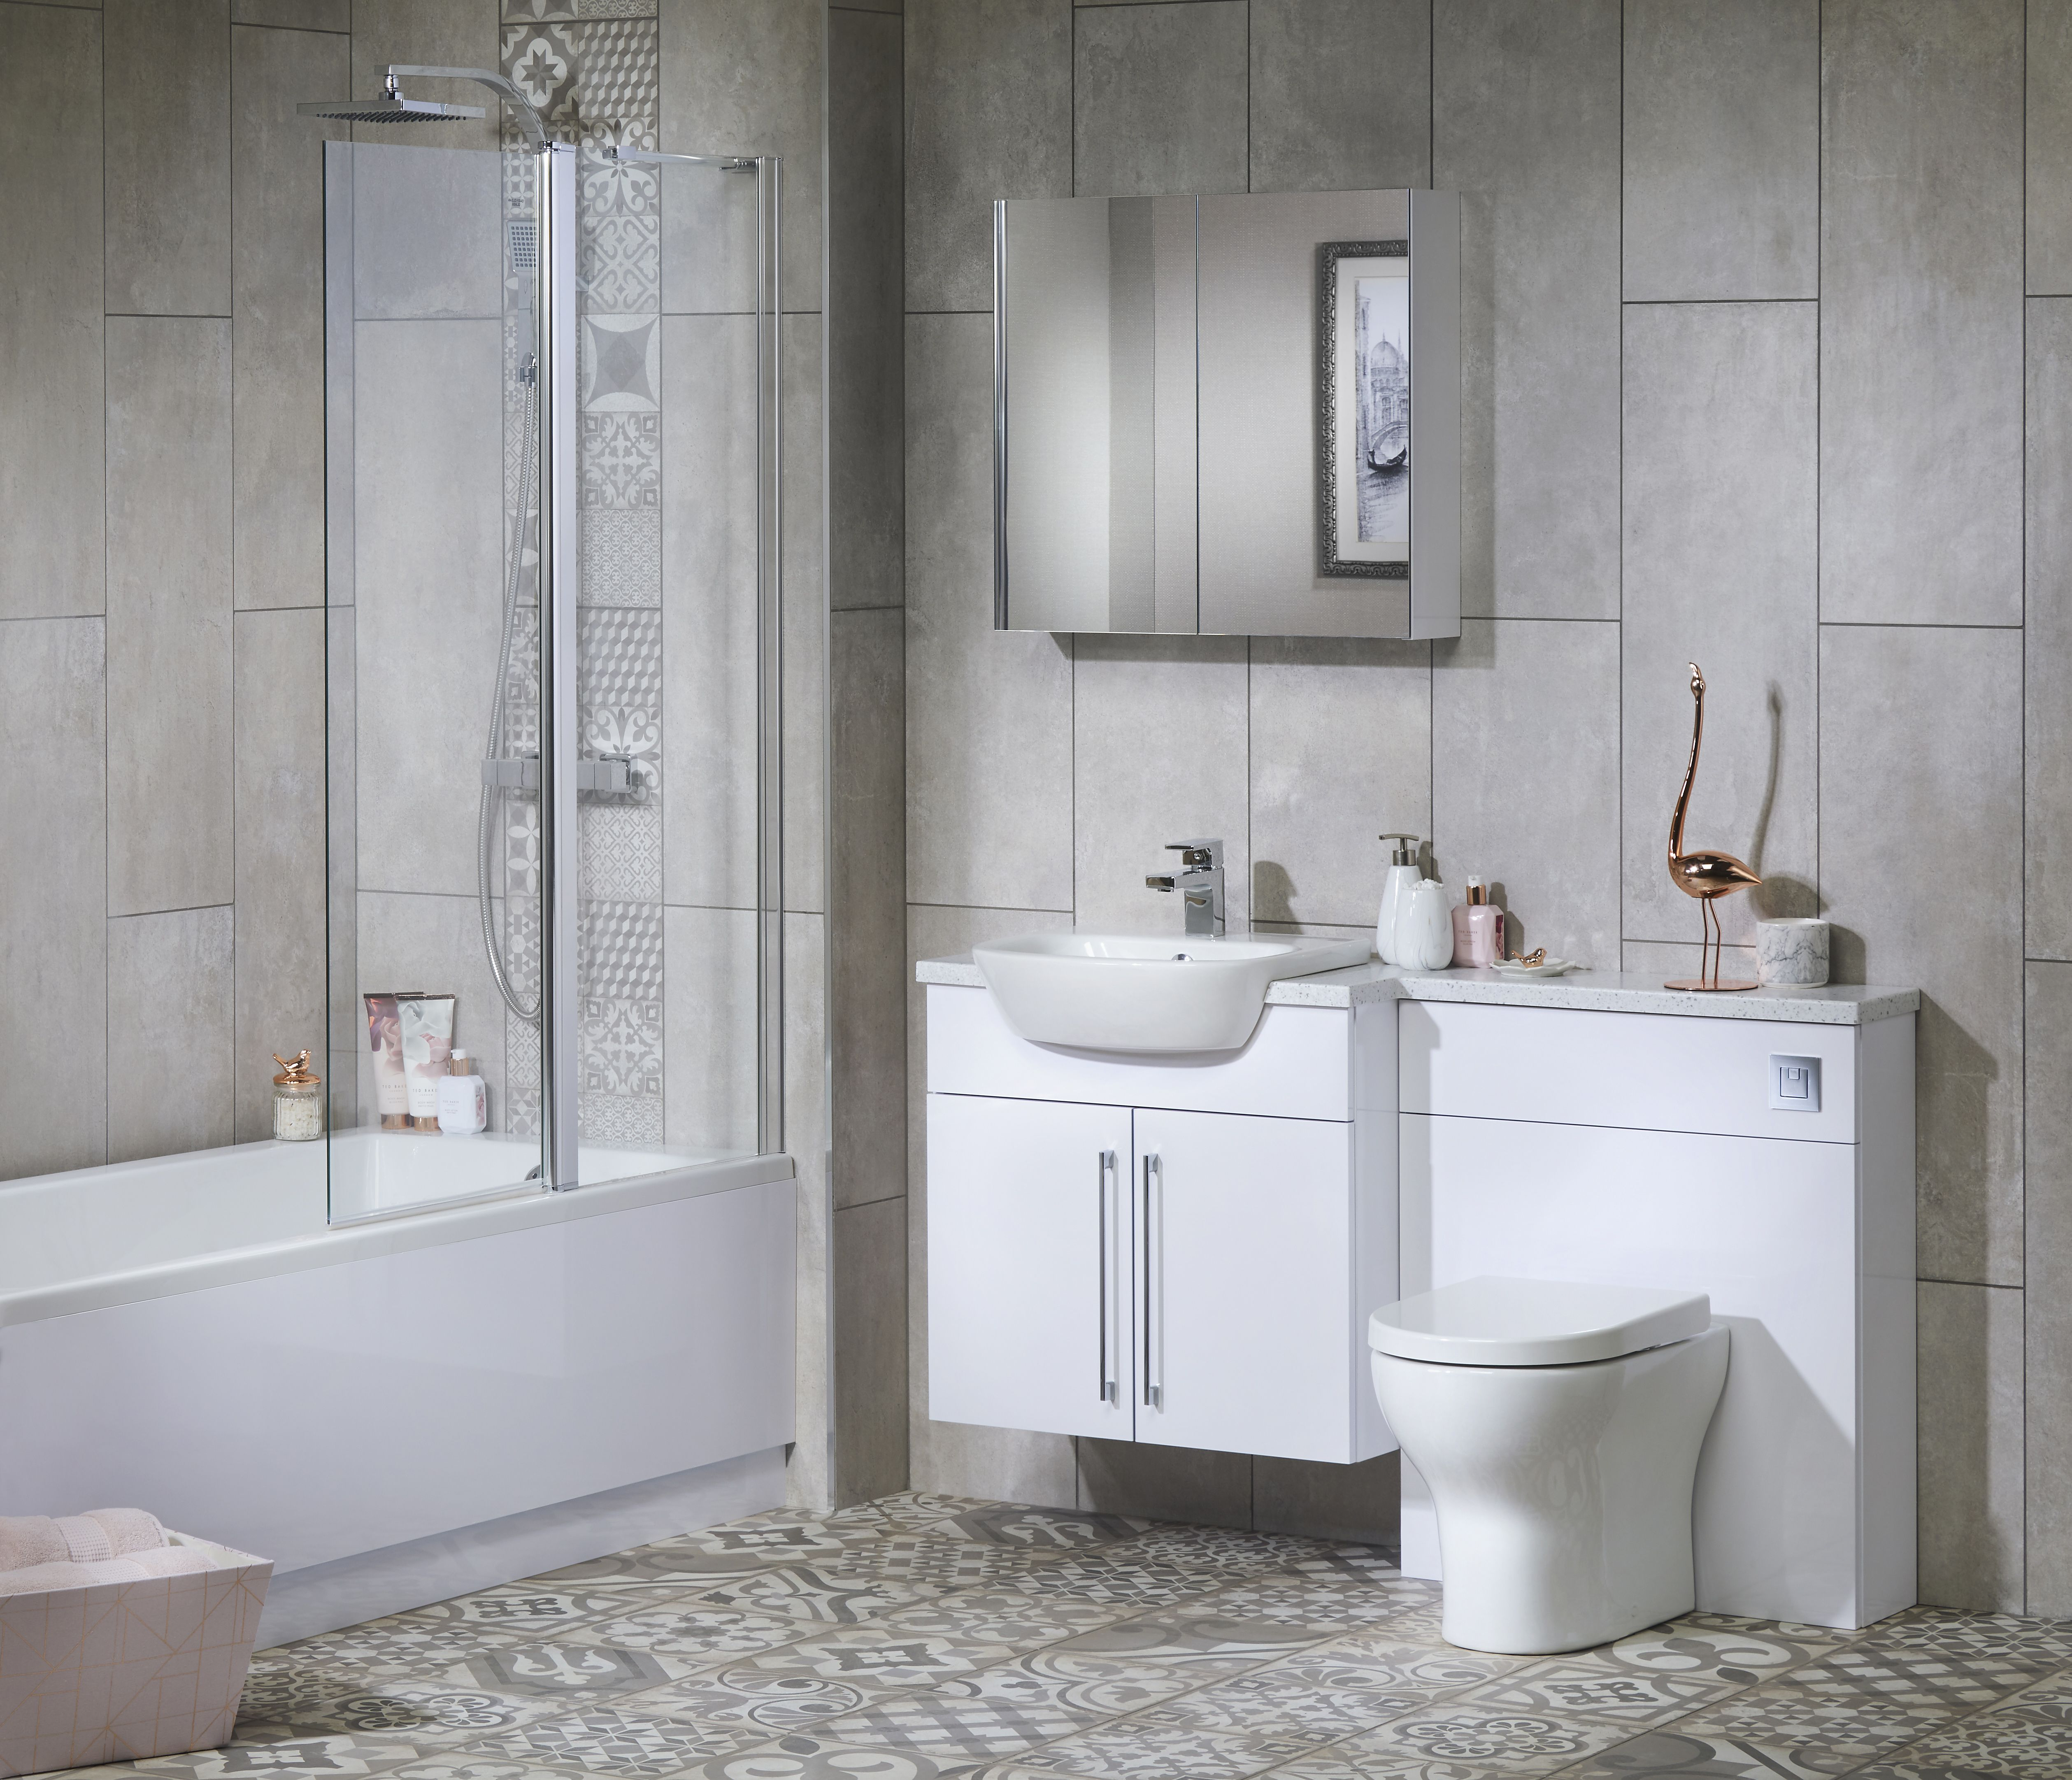 Make a compact bathroom feel more spacious by adding a mirror or